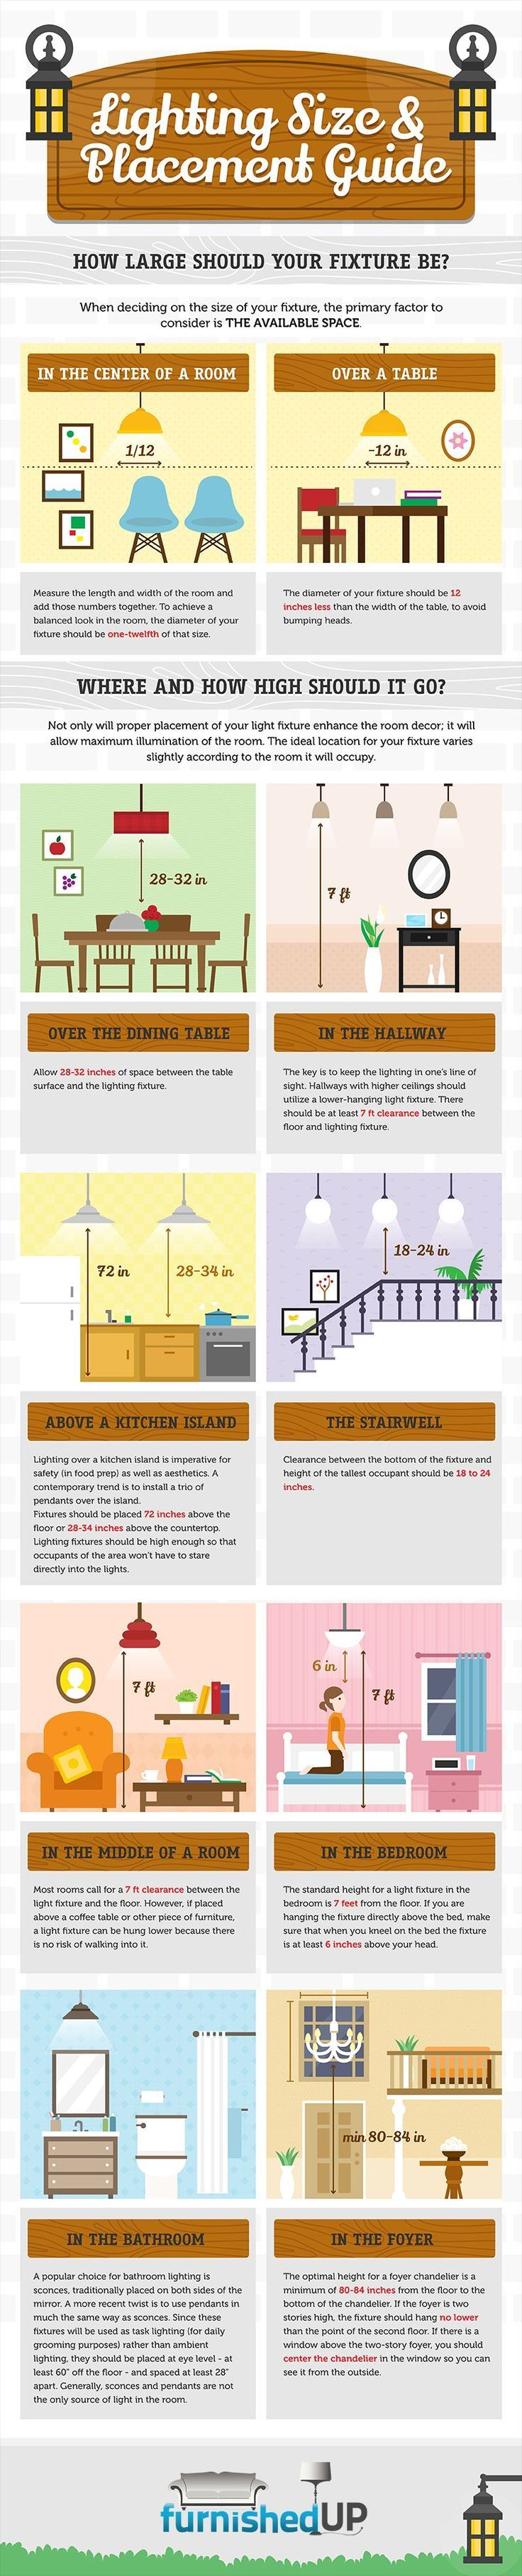 How to hang lighting, a practical guide to measurements. Very good to know for hanging light fixtures.